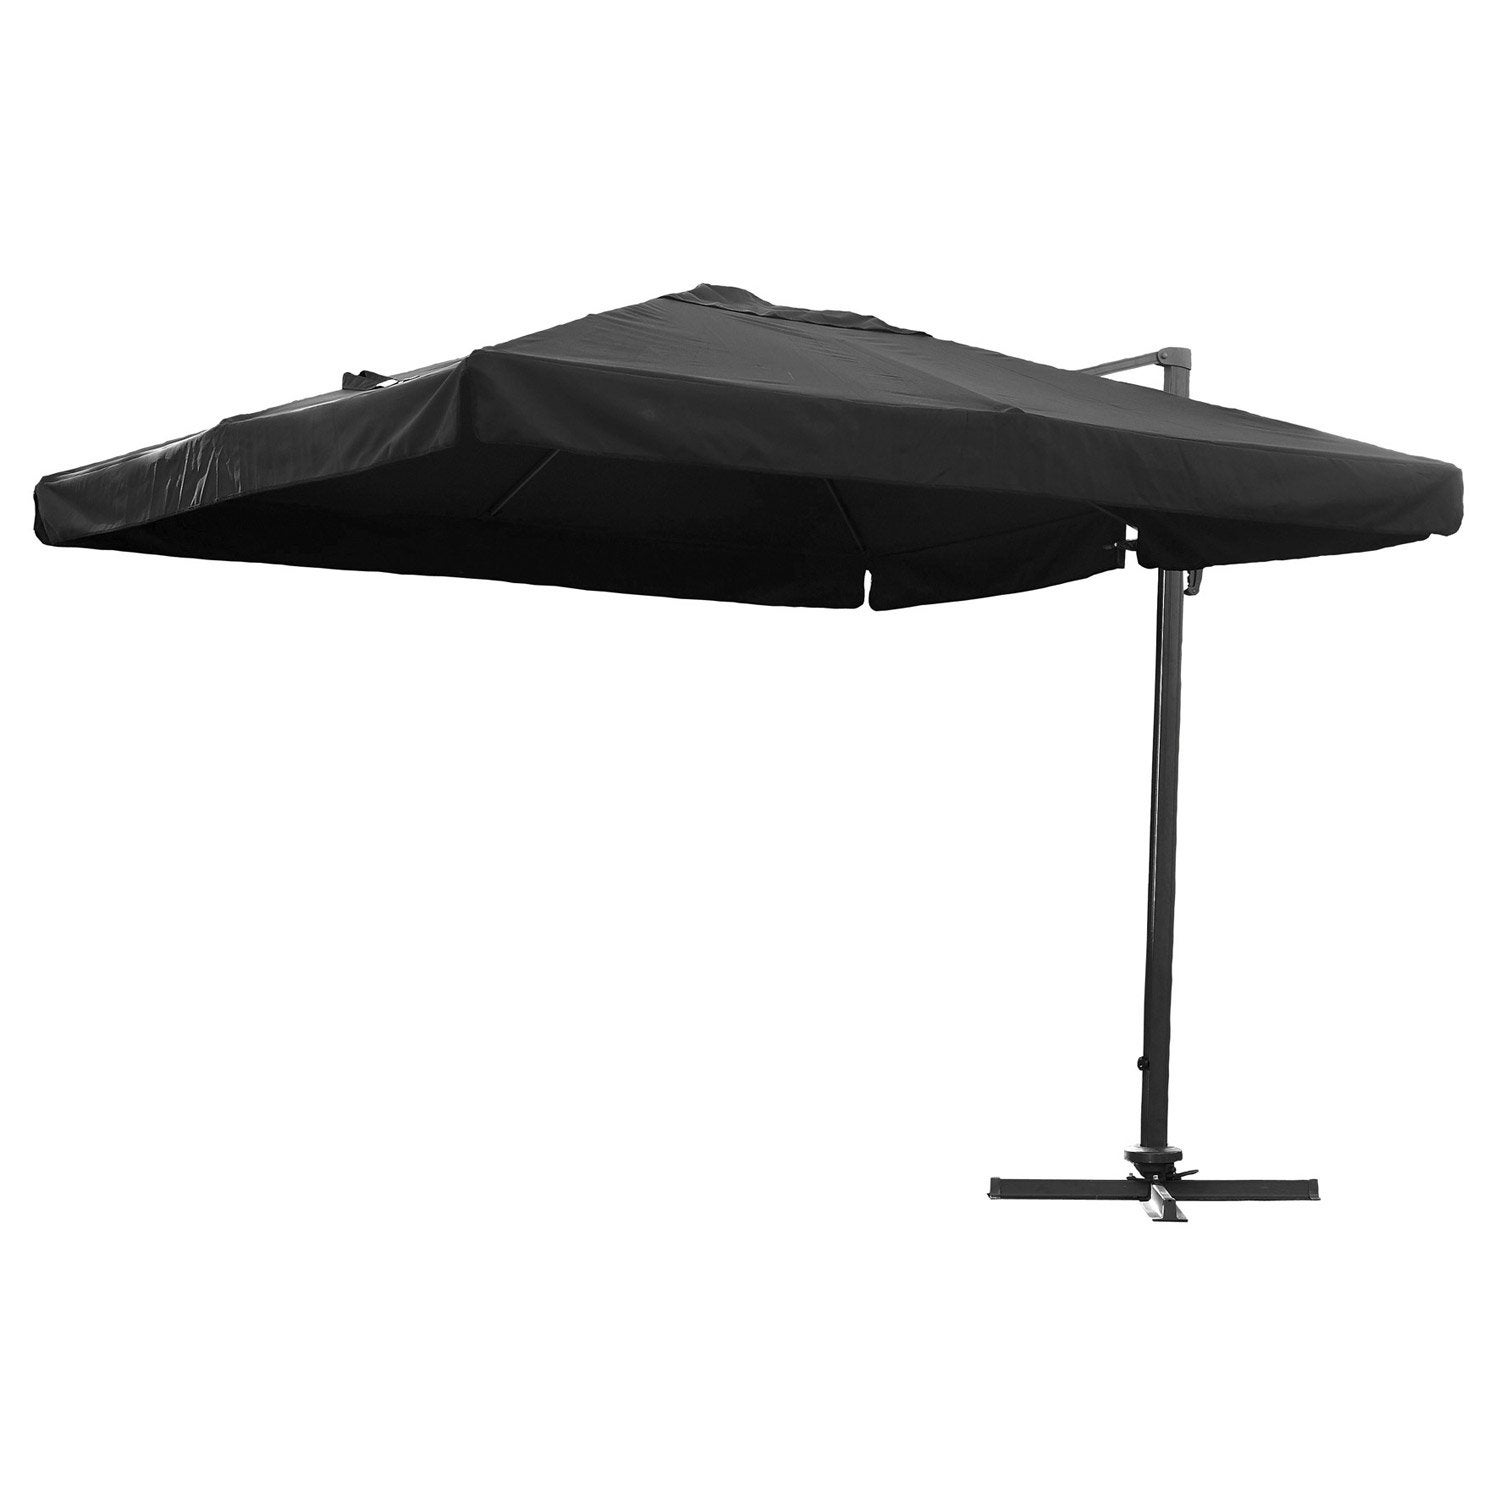 parasol excentr dcb garden noir 9 m leroy merlin. Black Bedroom Furniture Sets. Home Design Ideas